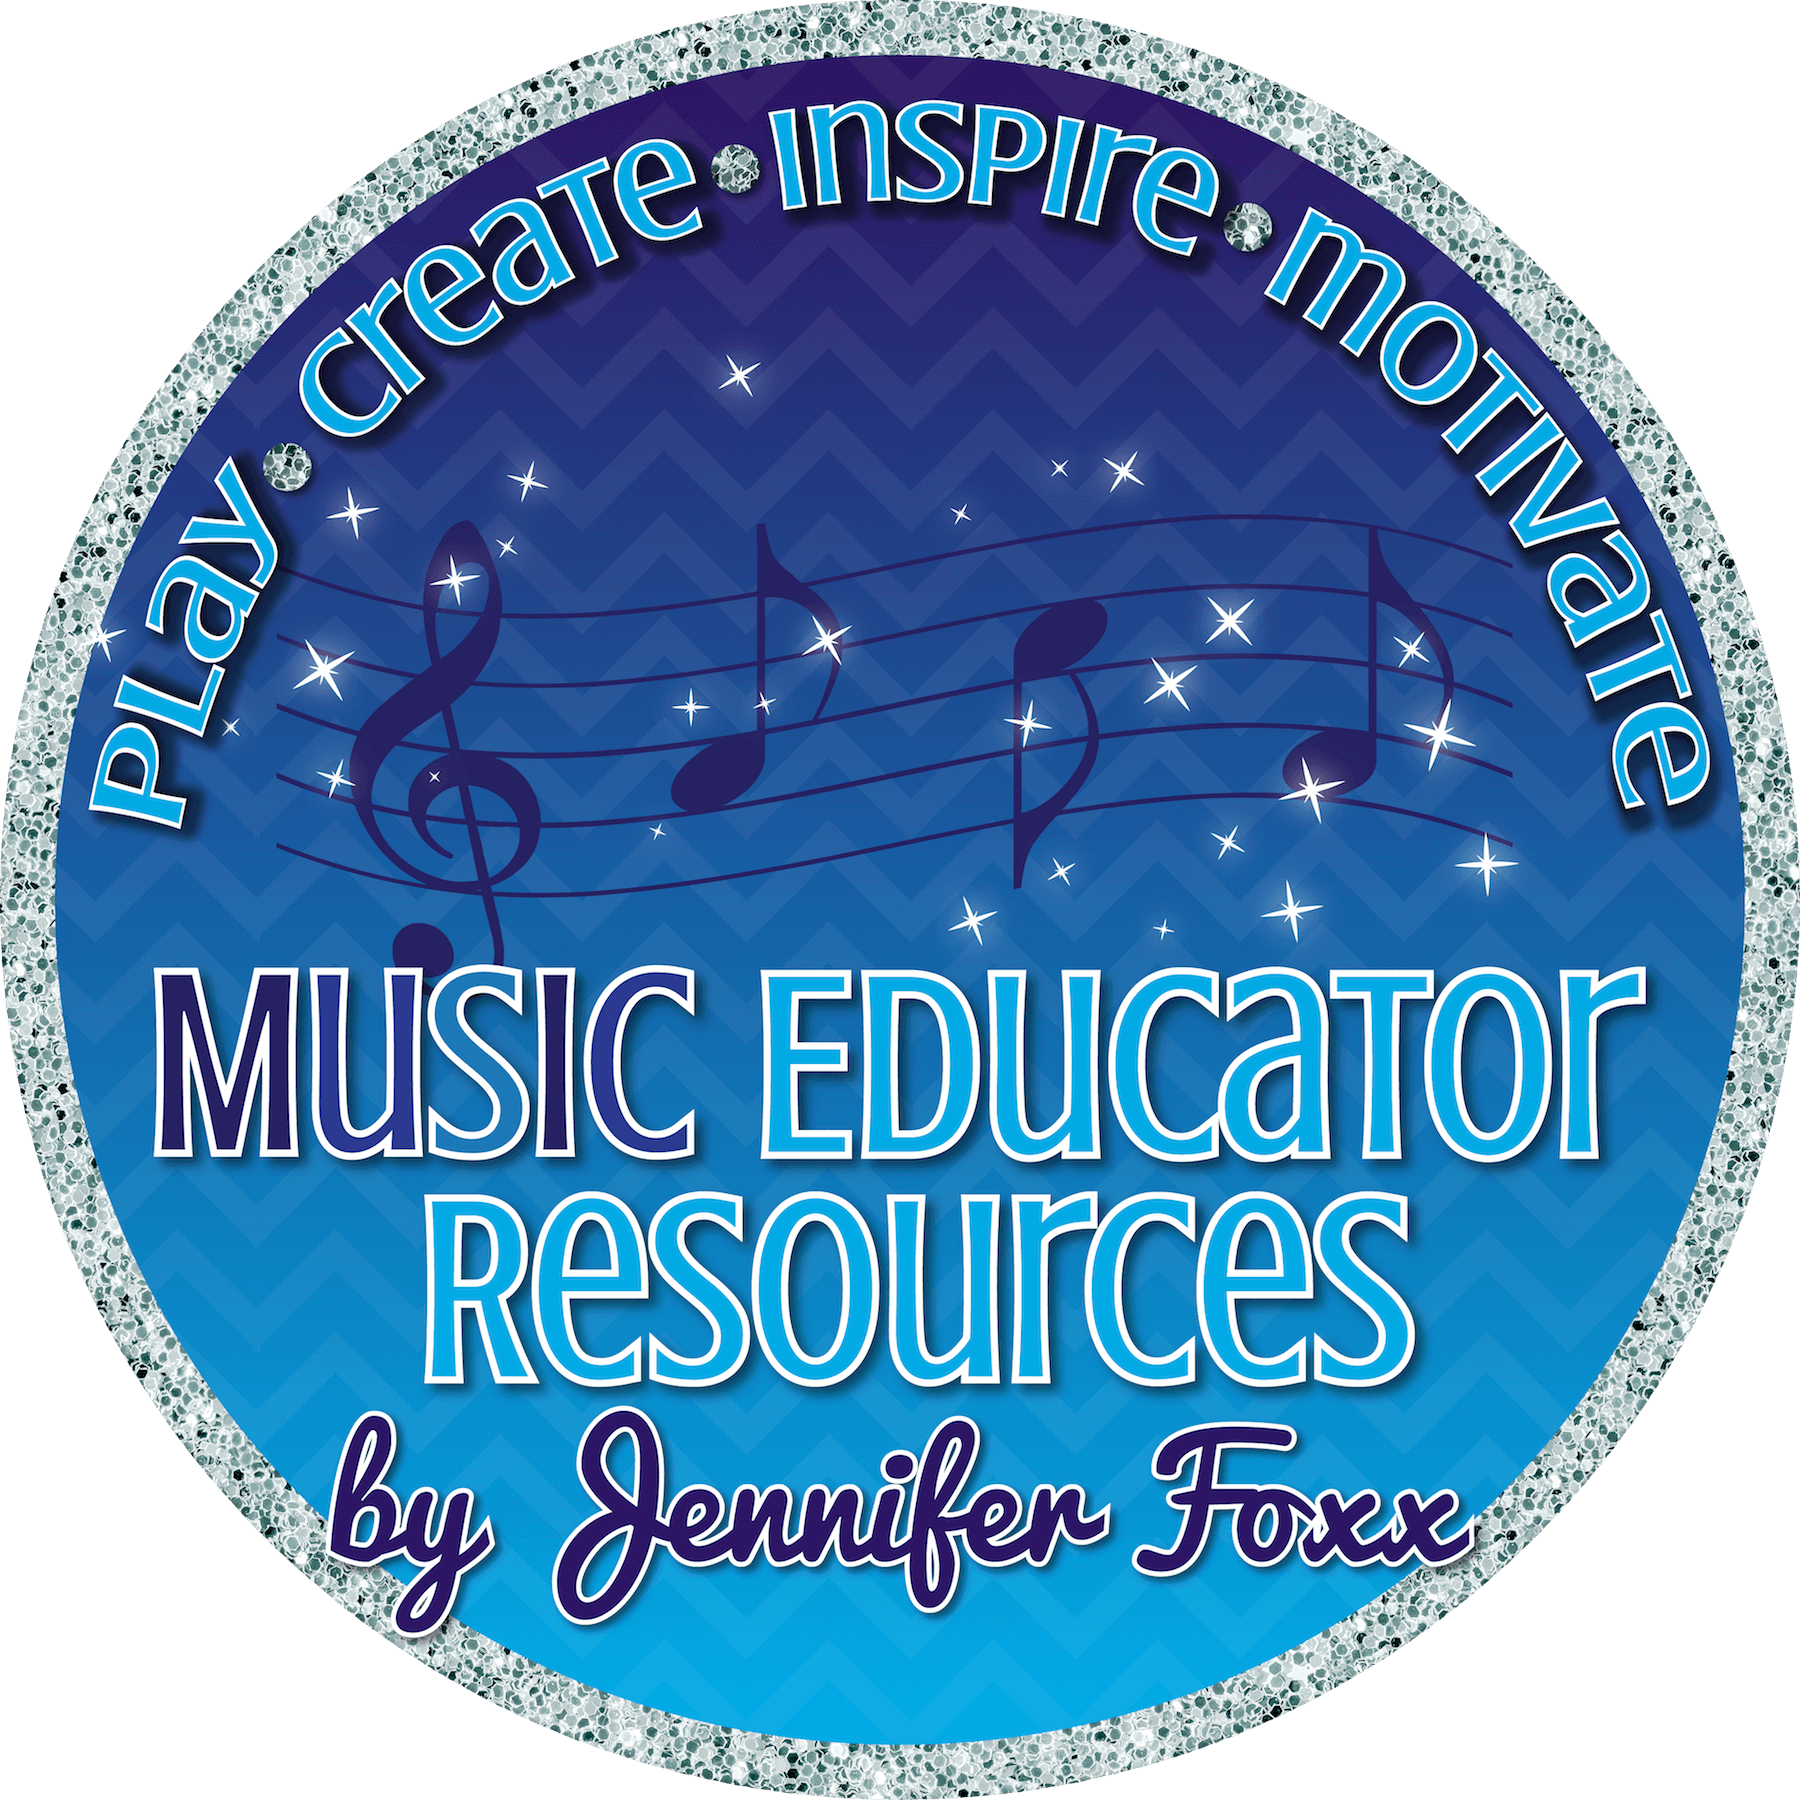 Music Educator Resources